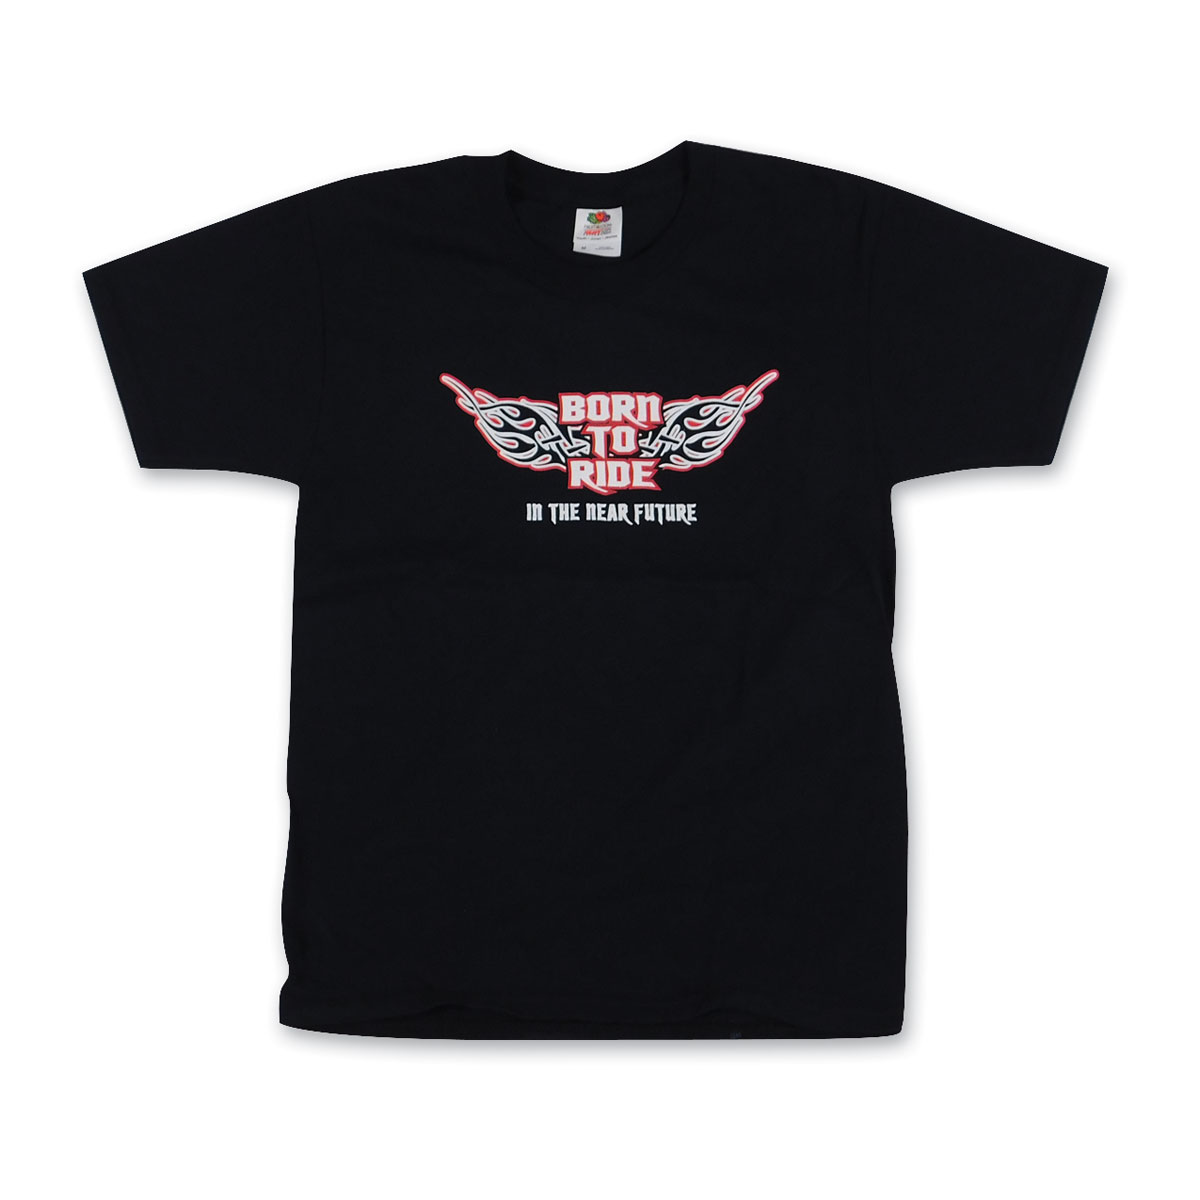 J&P Cycles® 'Born To Ride In The Near Future' T-shirt